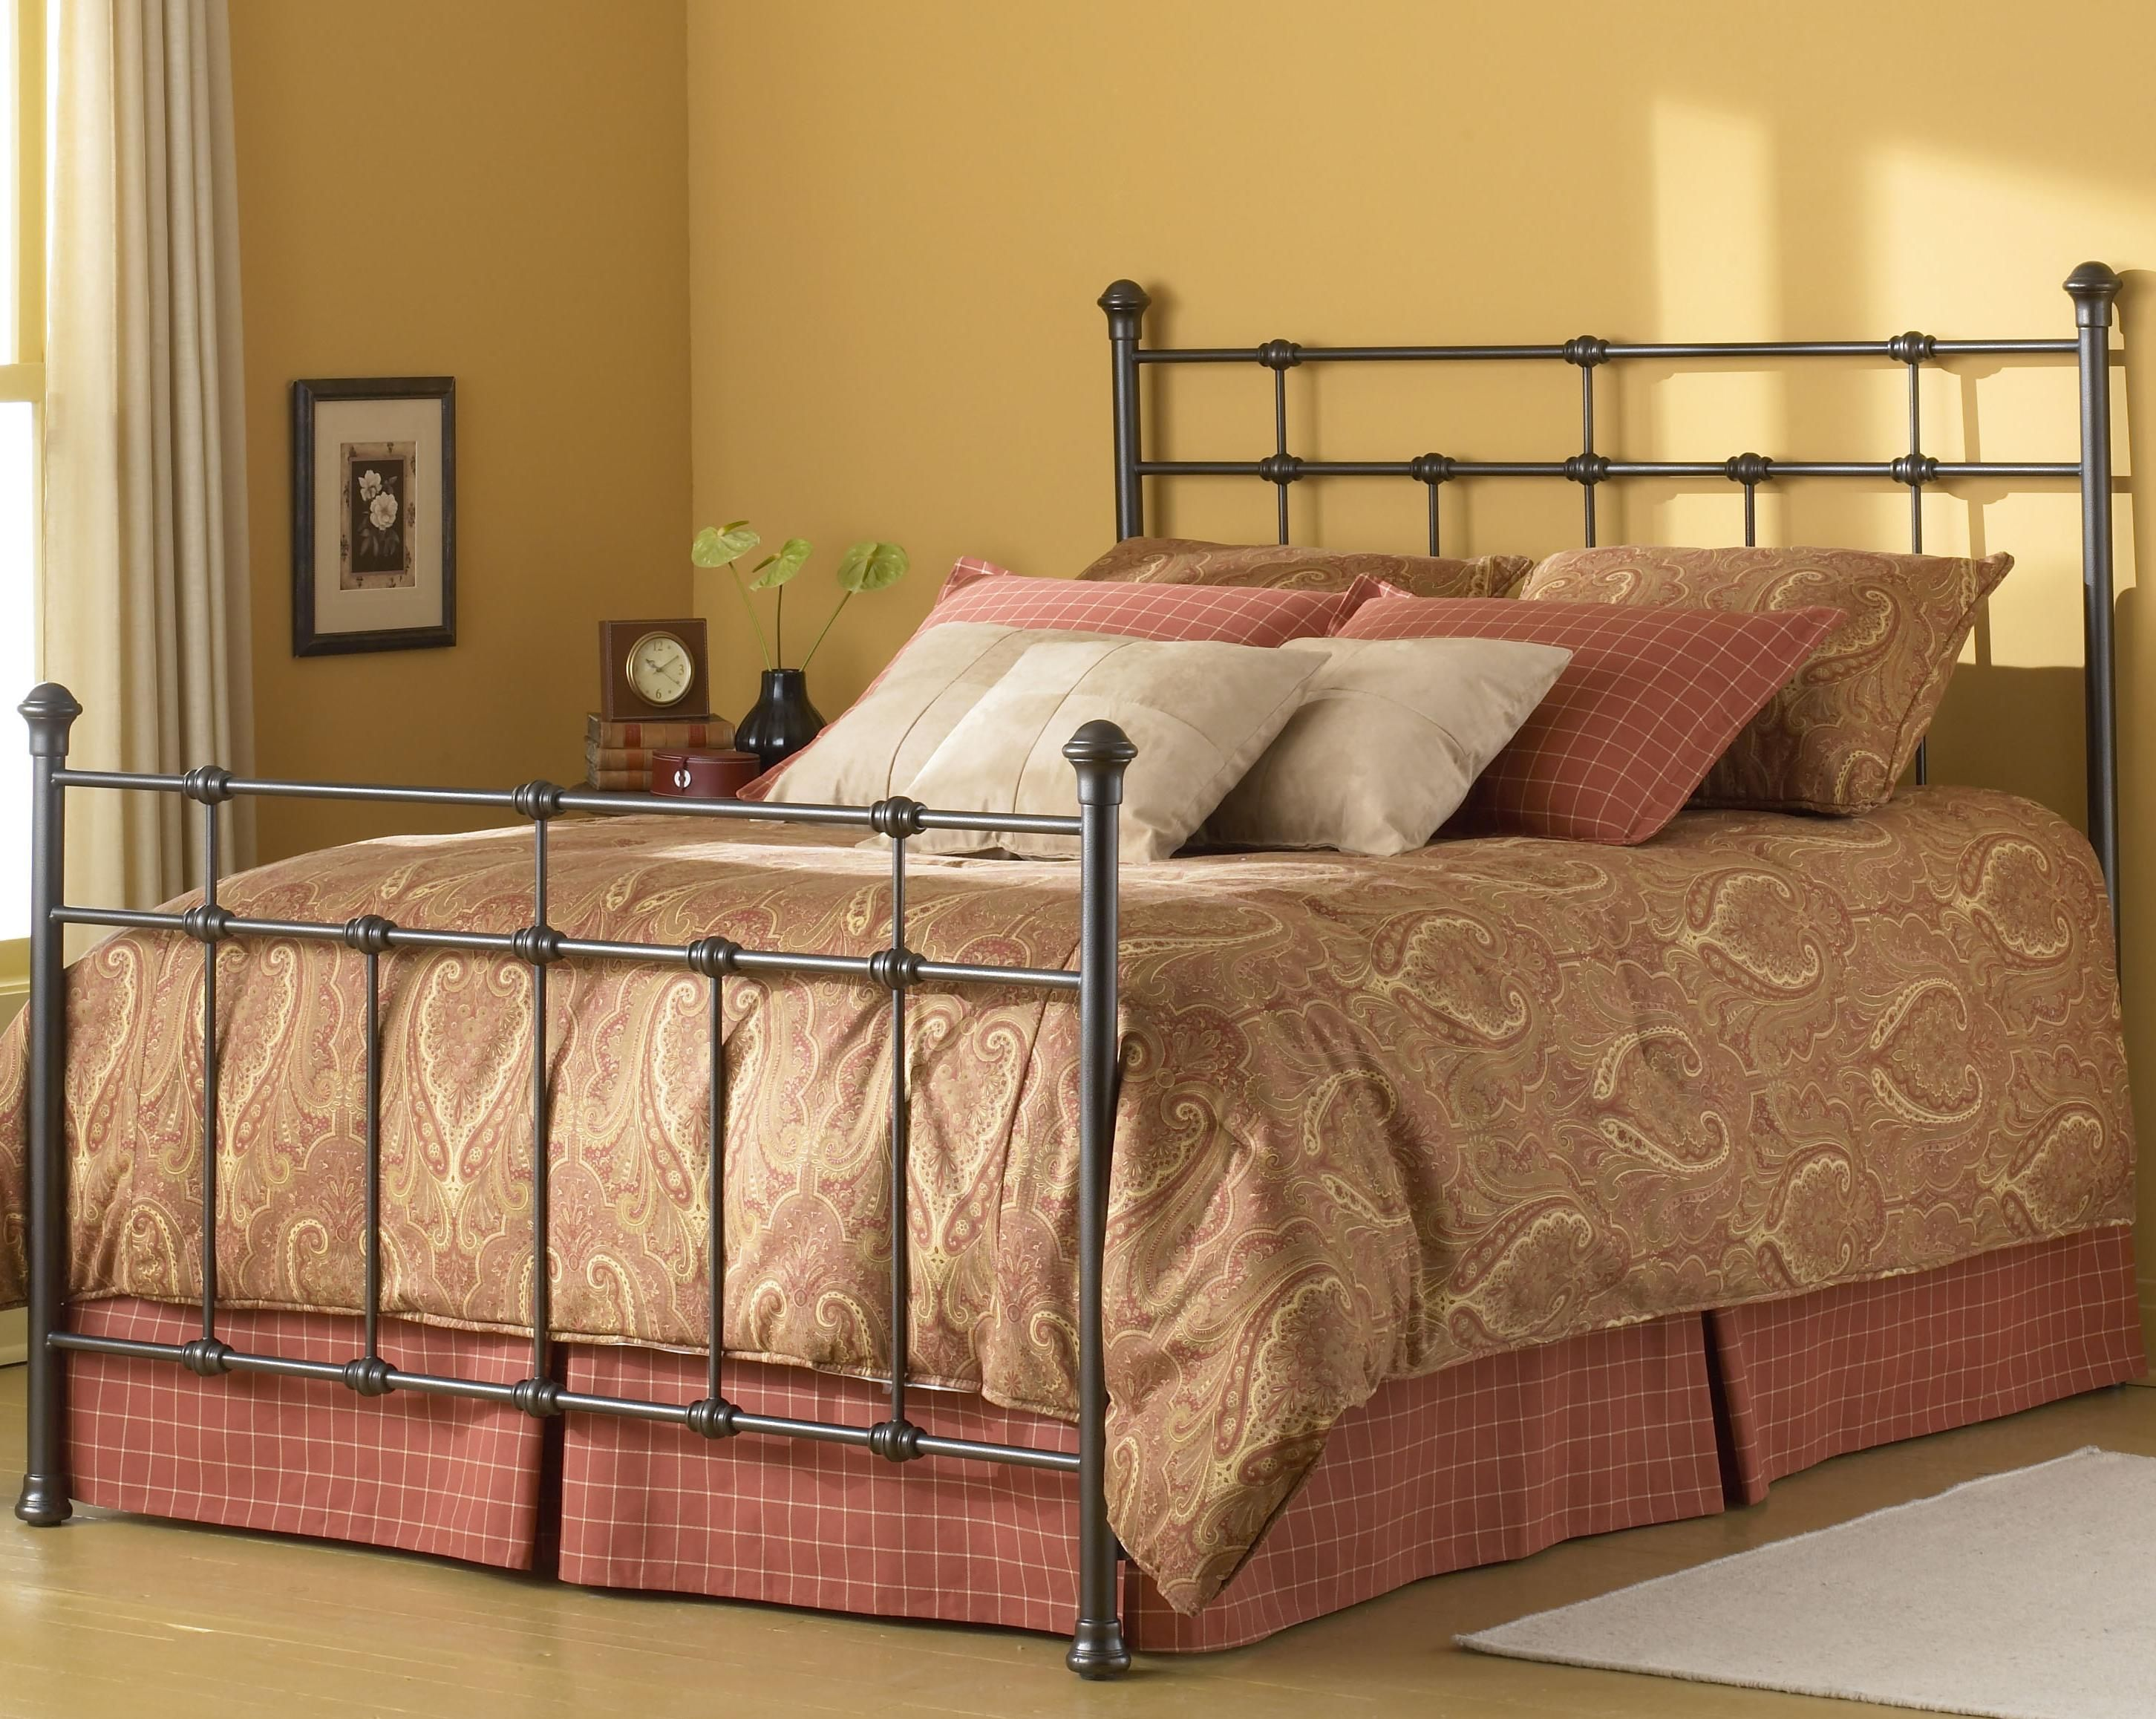 metal beds queen dexter bed by fashion bed group metals dexter